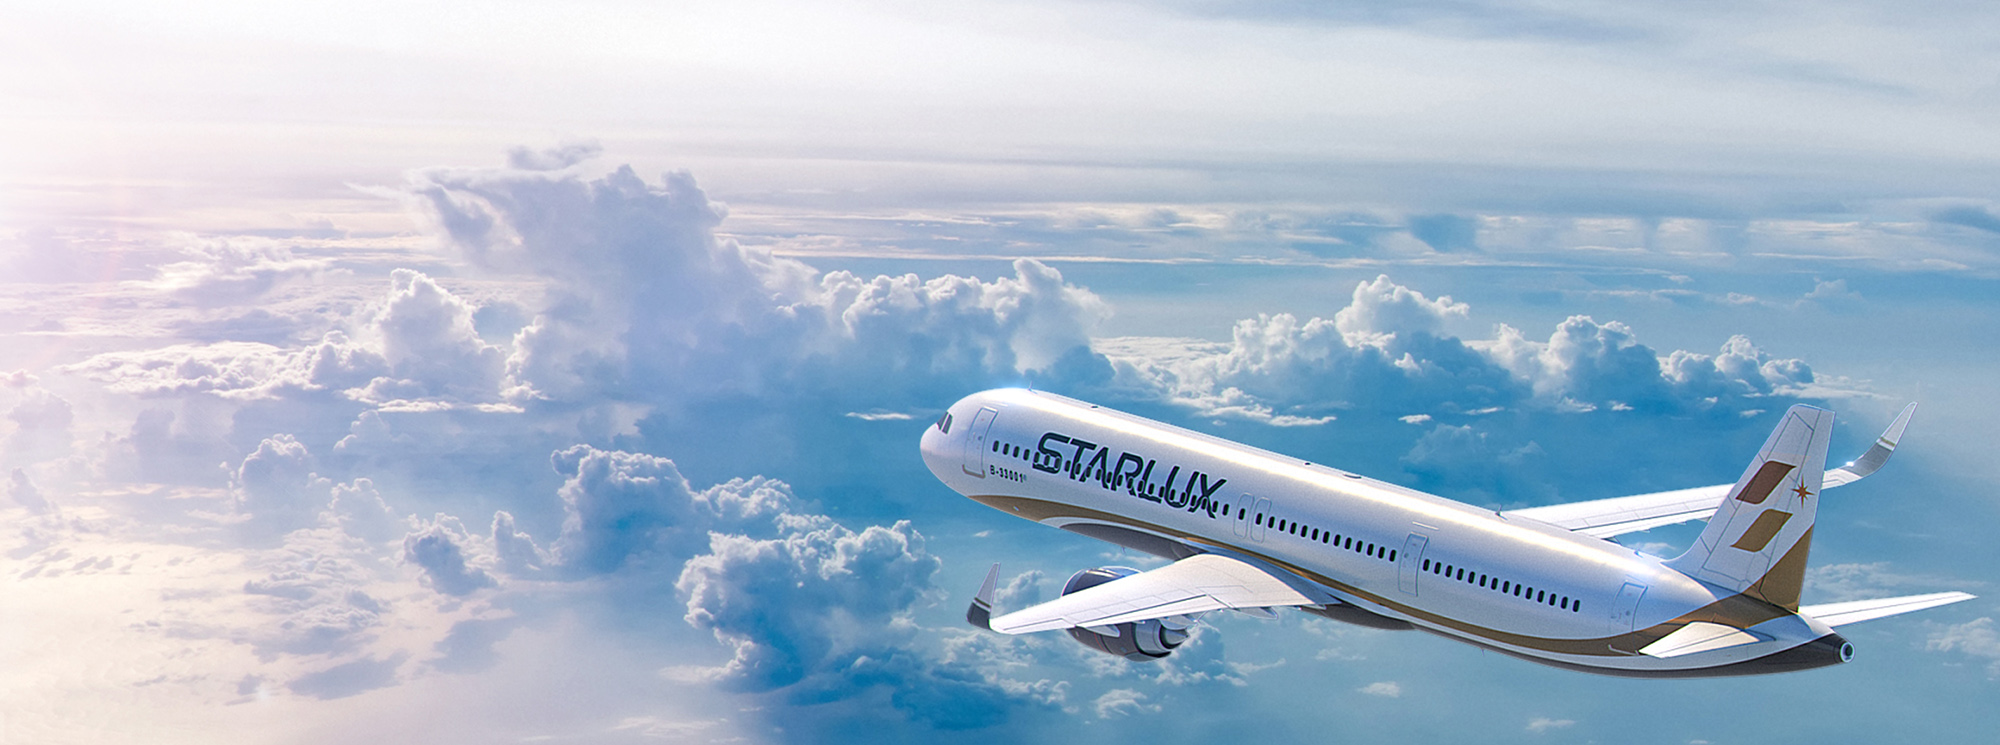 JX A321 (Starlux Airlines)